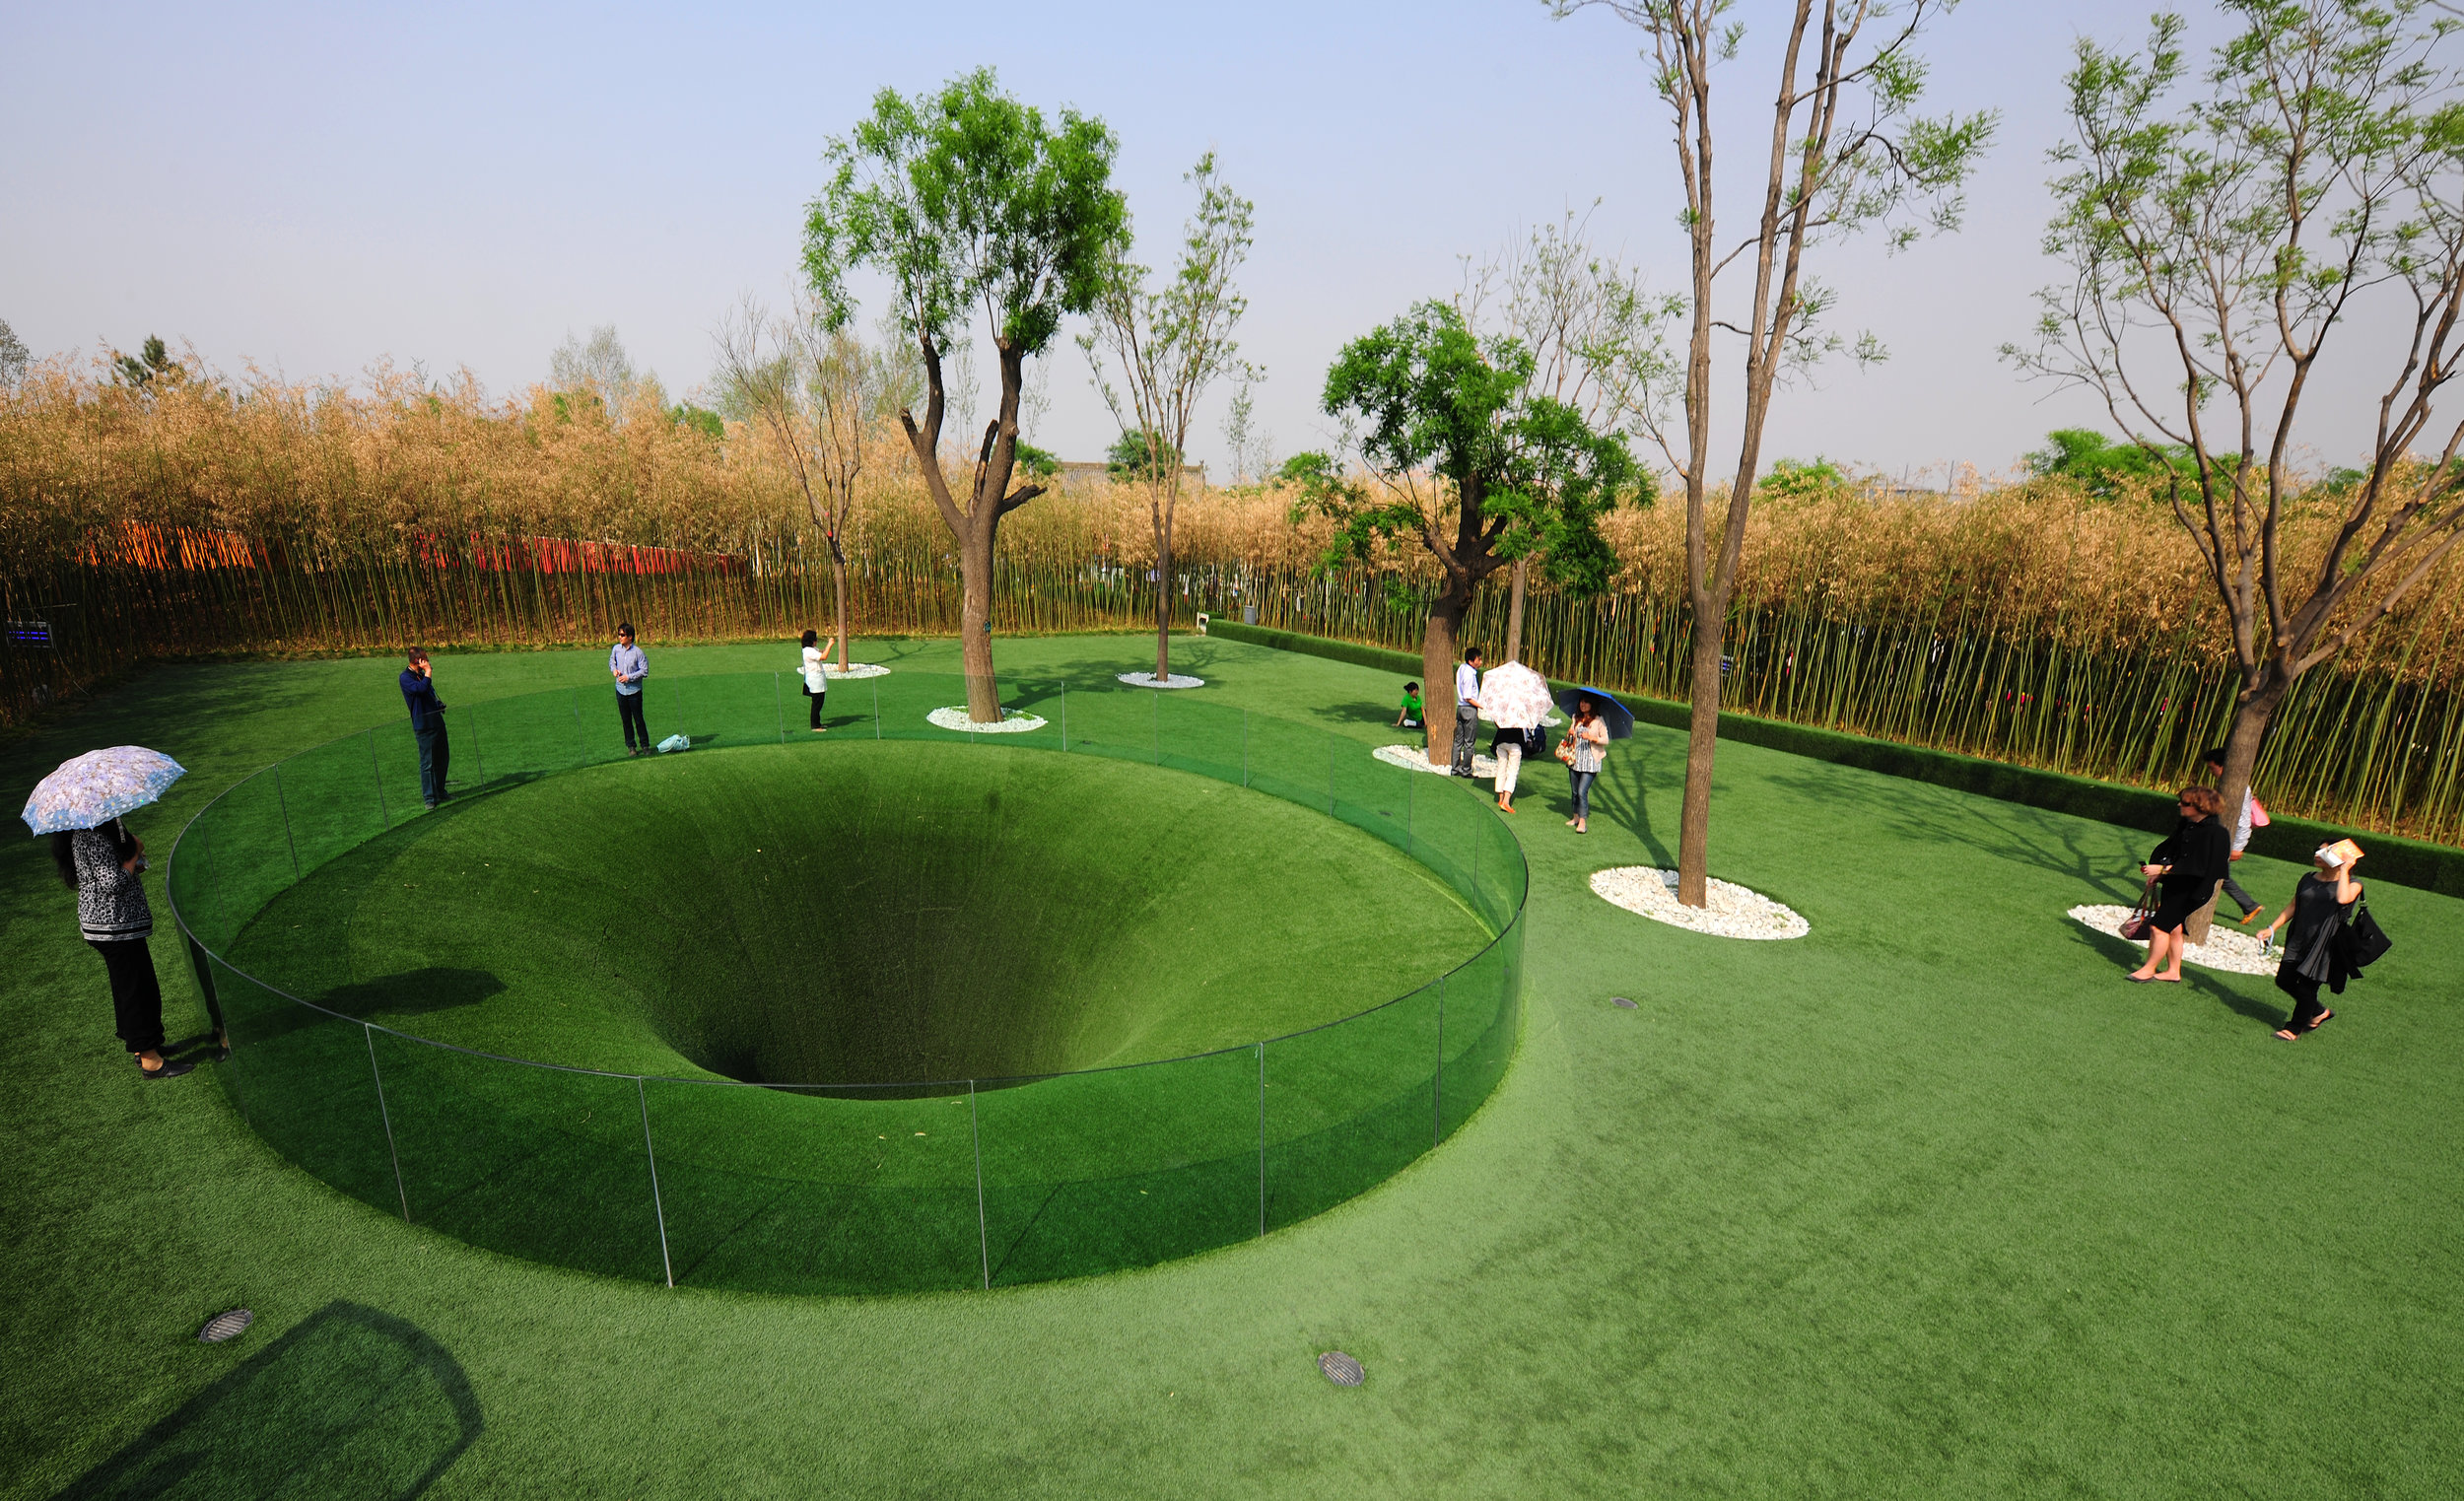 The Big Dig in Xi'an, China. This is a TOPOTEK1 project.